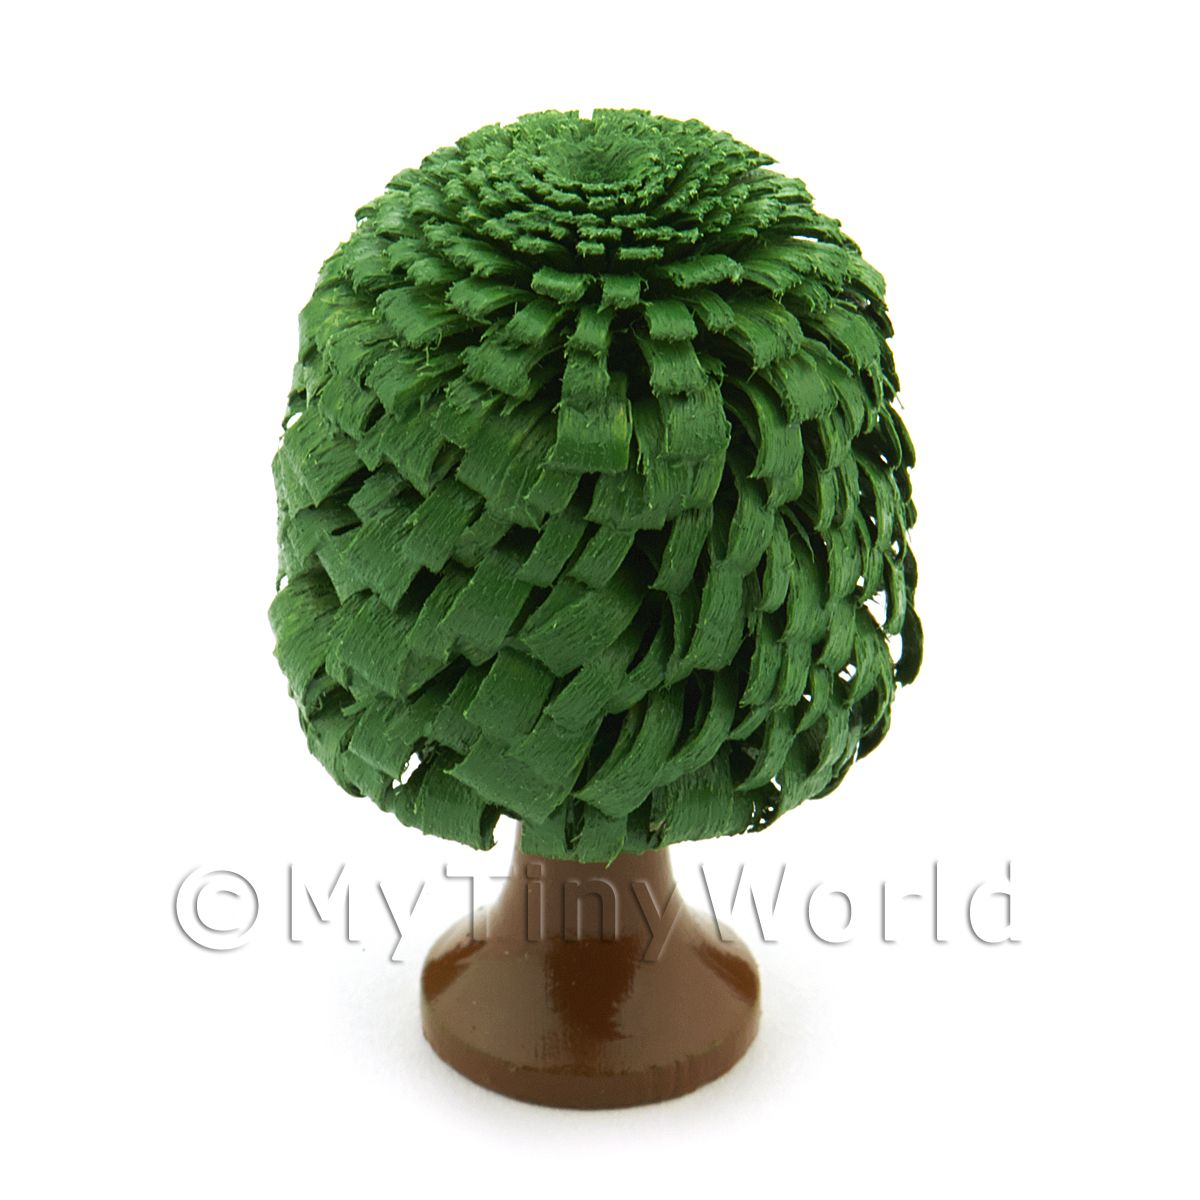 Dolls House Miniature 40mm Classic Shaped Green Tree